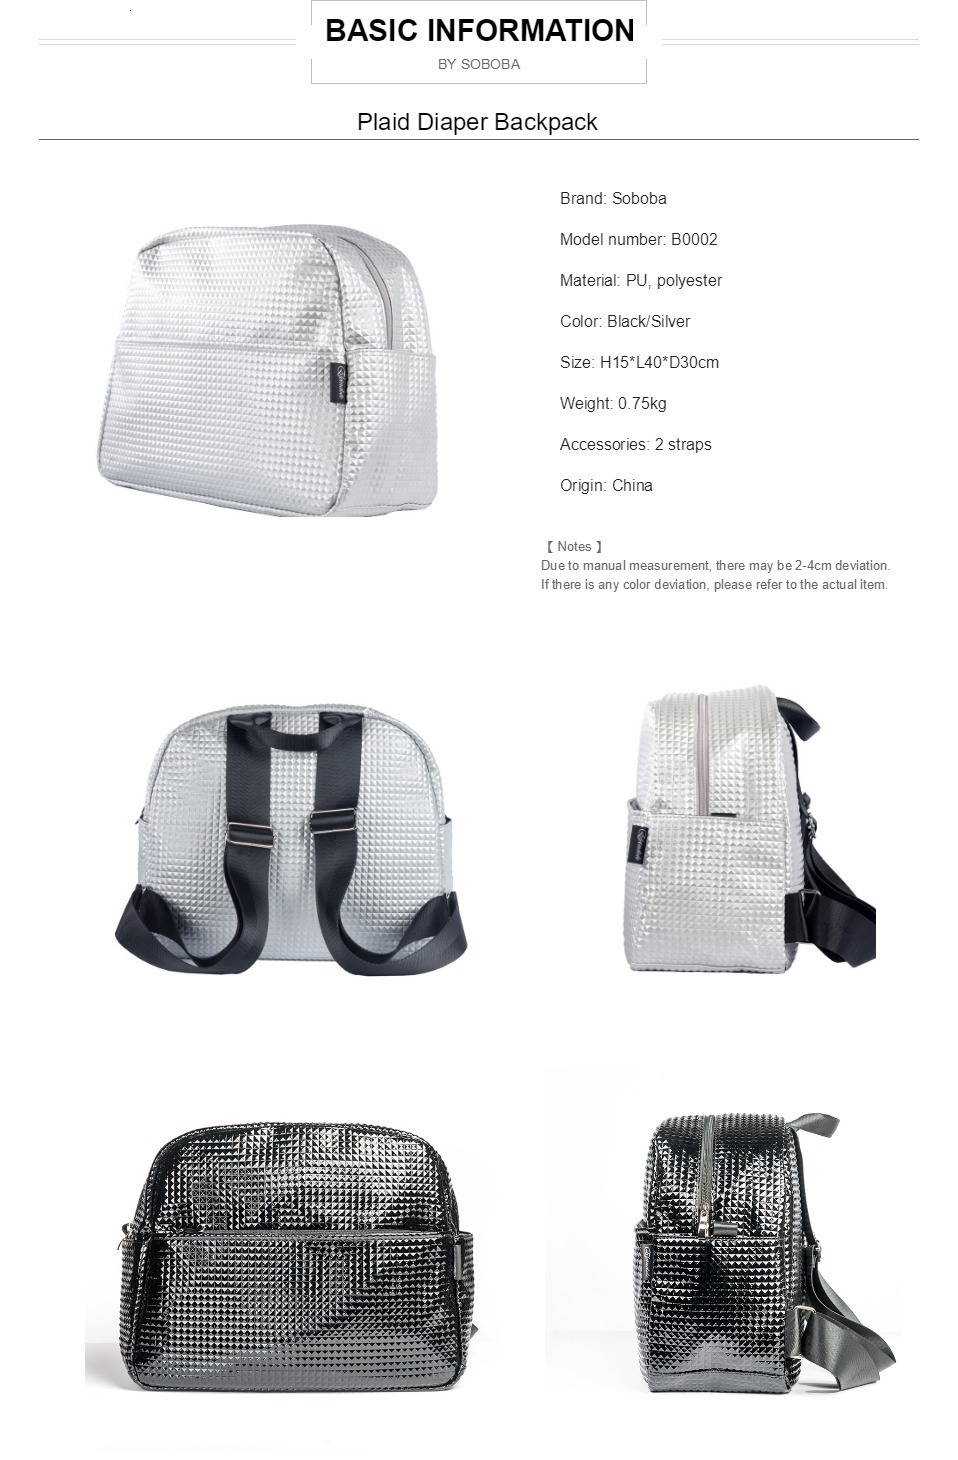 H94fc935d1d614564baea9686e9e6a175L Soboba Mommy Maternity Diaper Bags Solid Fashion Large Capacity Women Nursing Bag for Baby Care Stylish Outdoor Mommy Bags